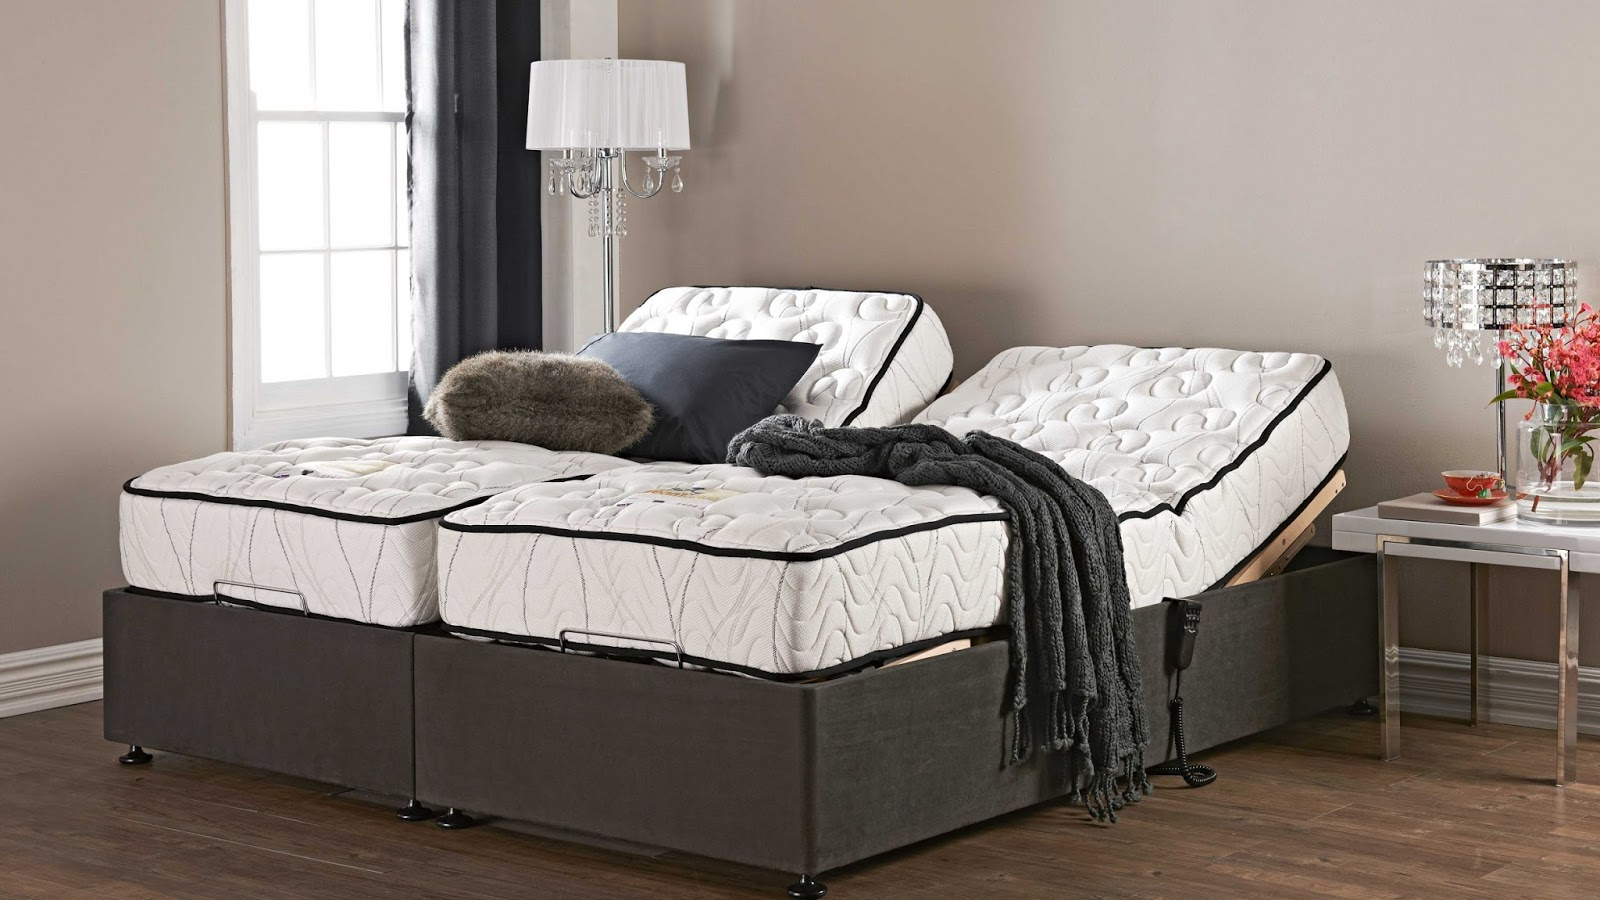 Simple Adjustable Mattress Preferences